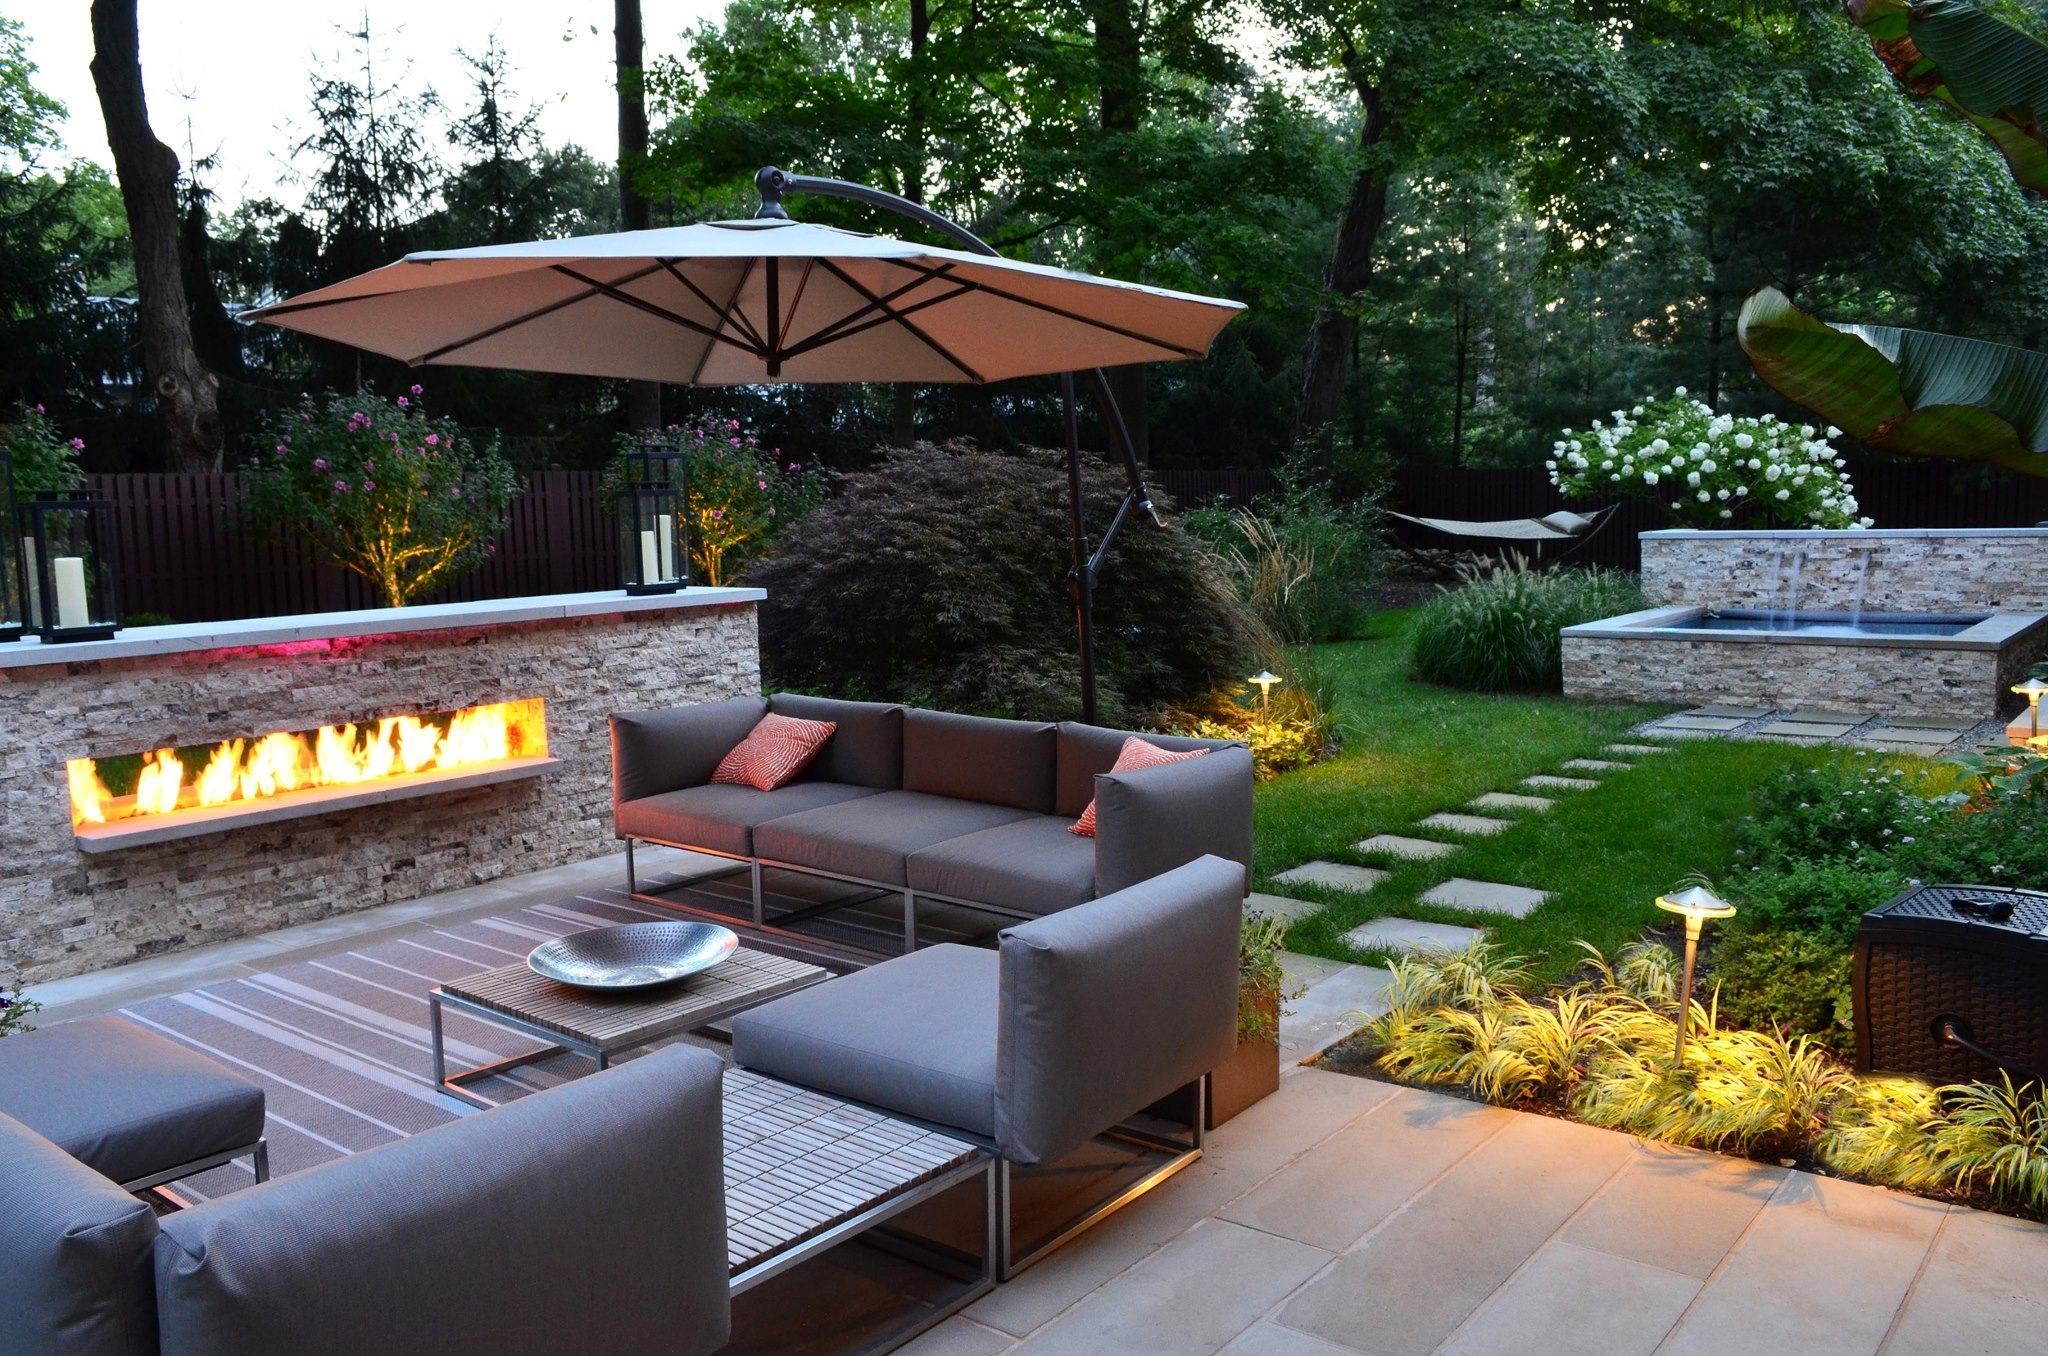 Patio, Backyard Haven - Percentage of buyers who want this feature: 87%Cost to install: $950 per 120 square feet for a concrete patio